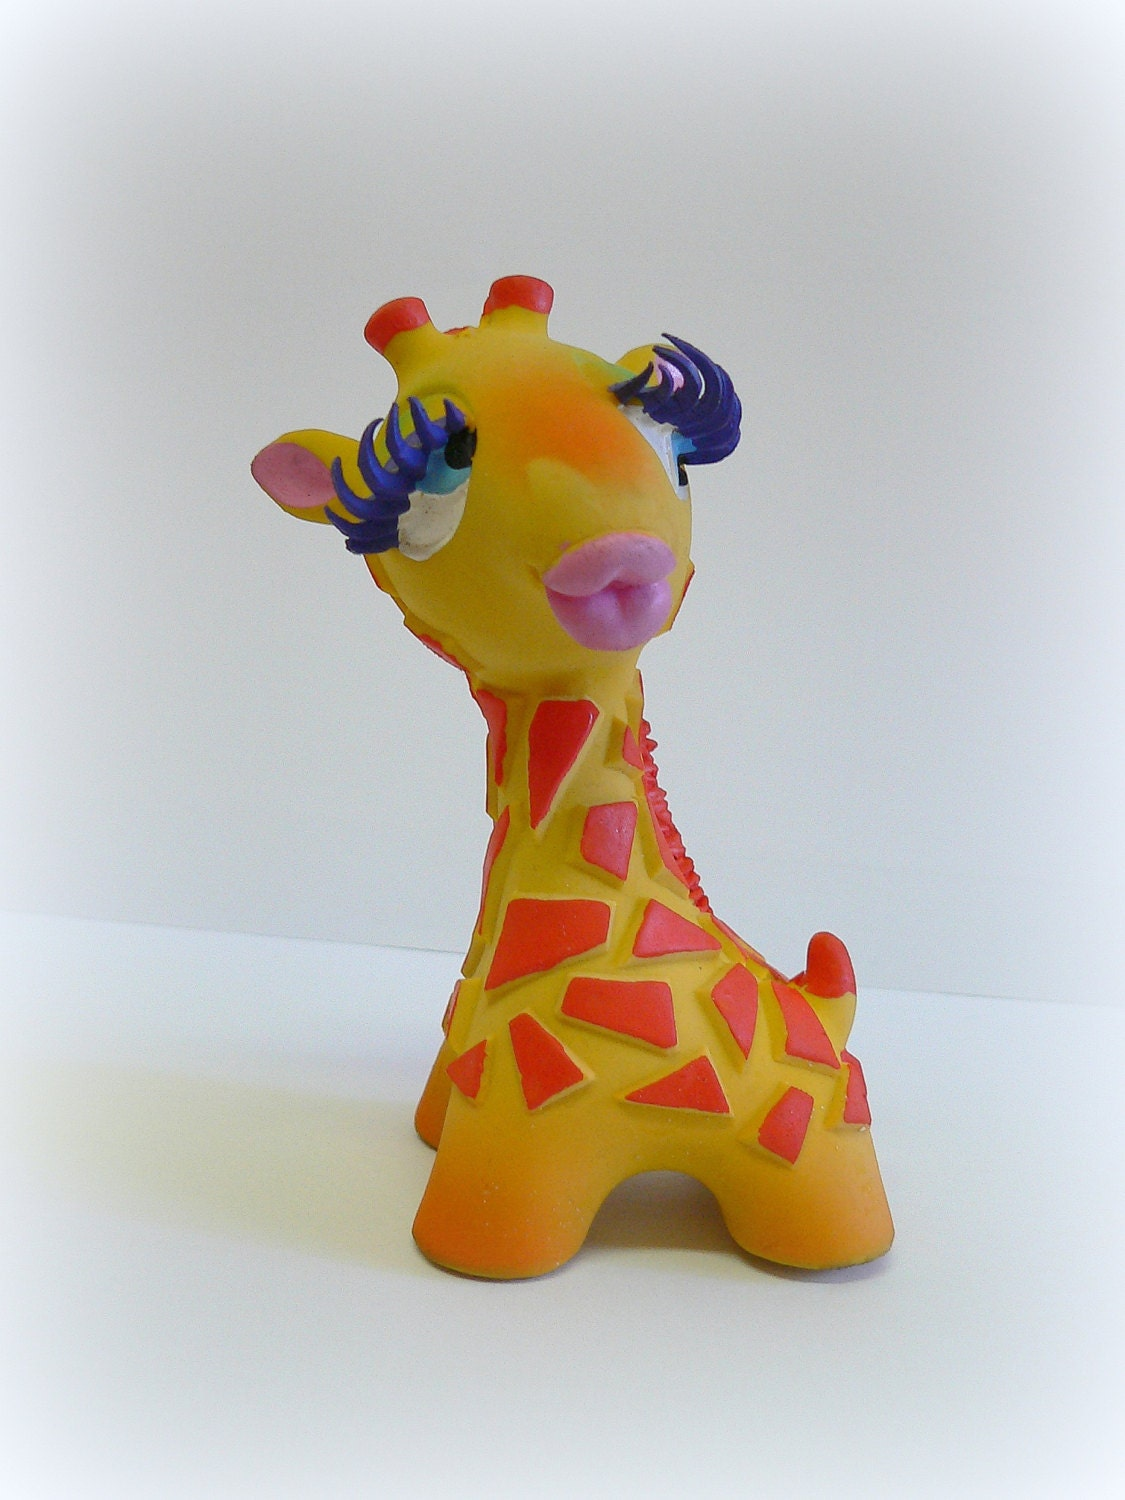 Squishy Rubber Toys : Rubber Giraffe Toy soft rubber animal toylatex Lanco by Reemon